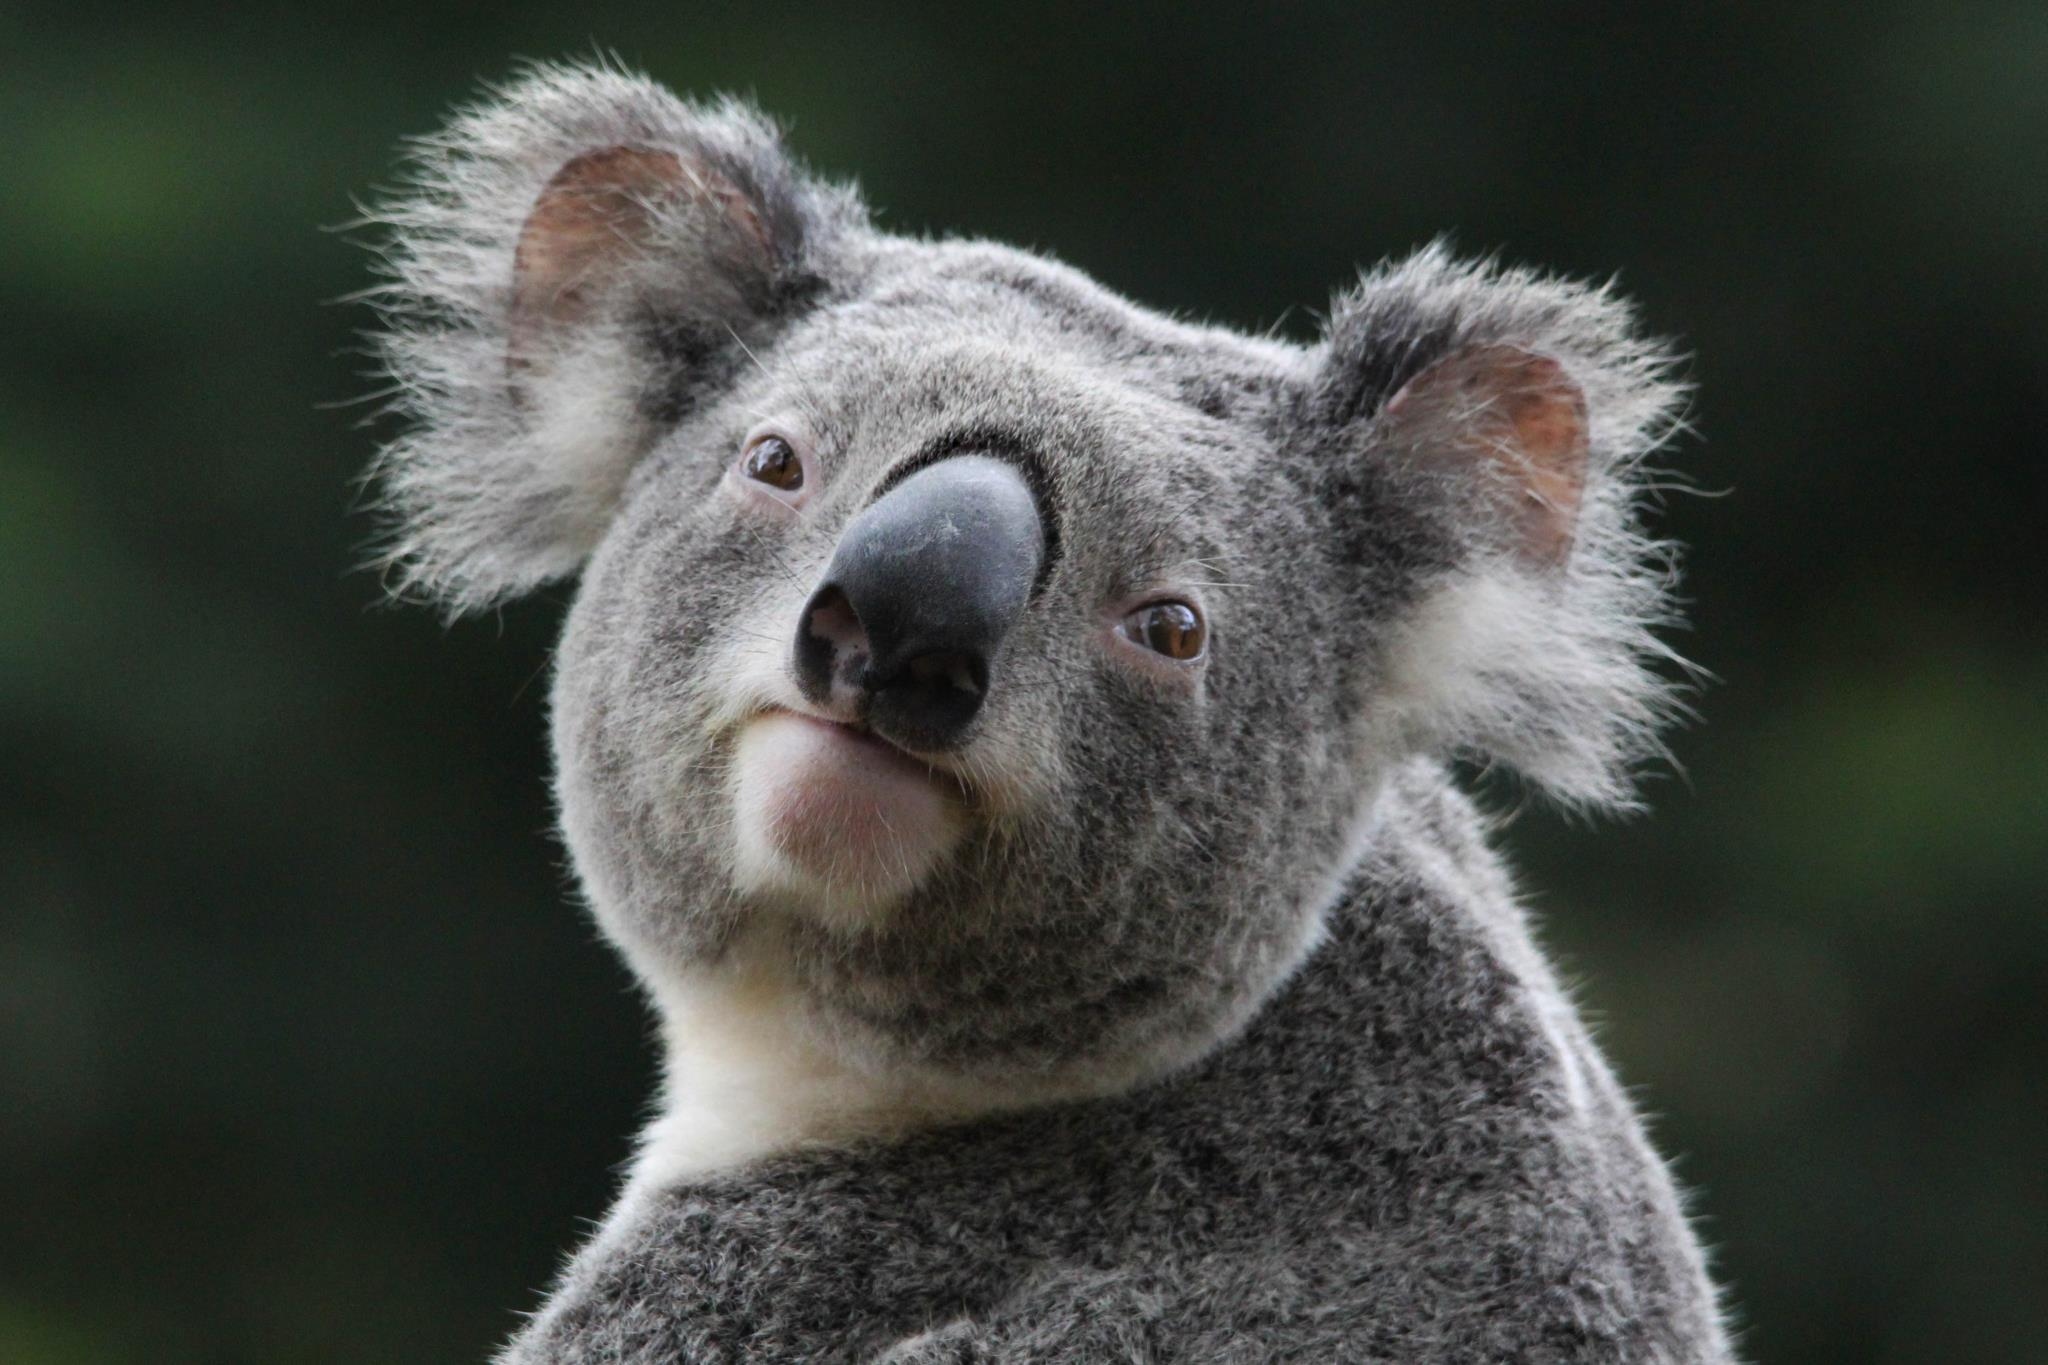 Wallpapers For > Cute Koala Wallpaper